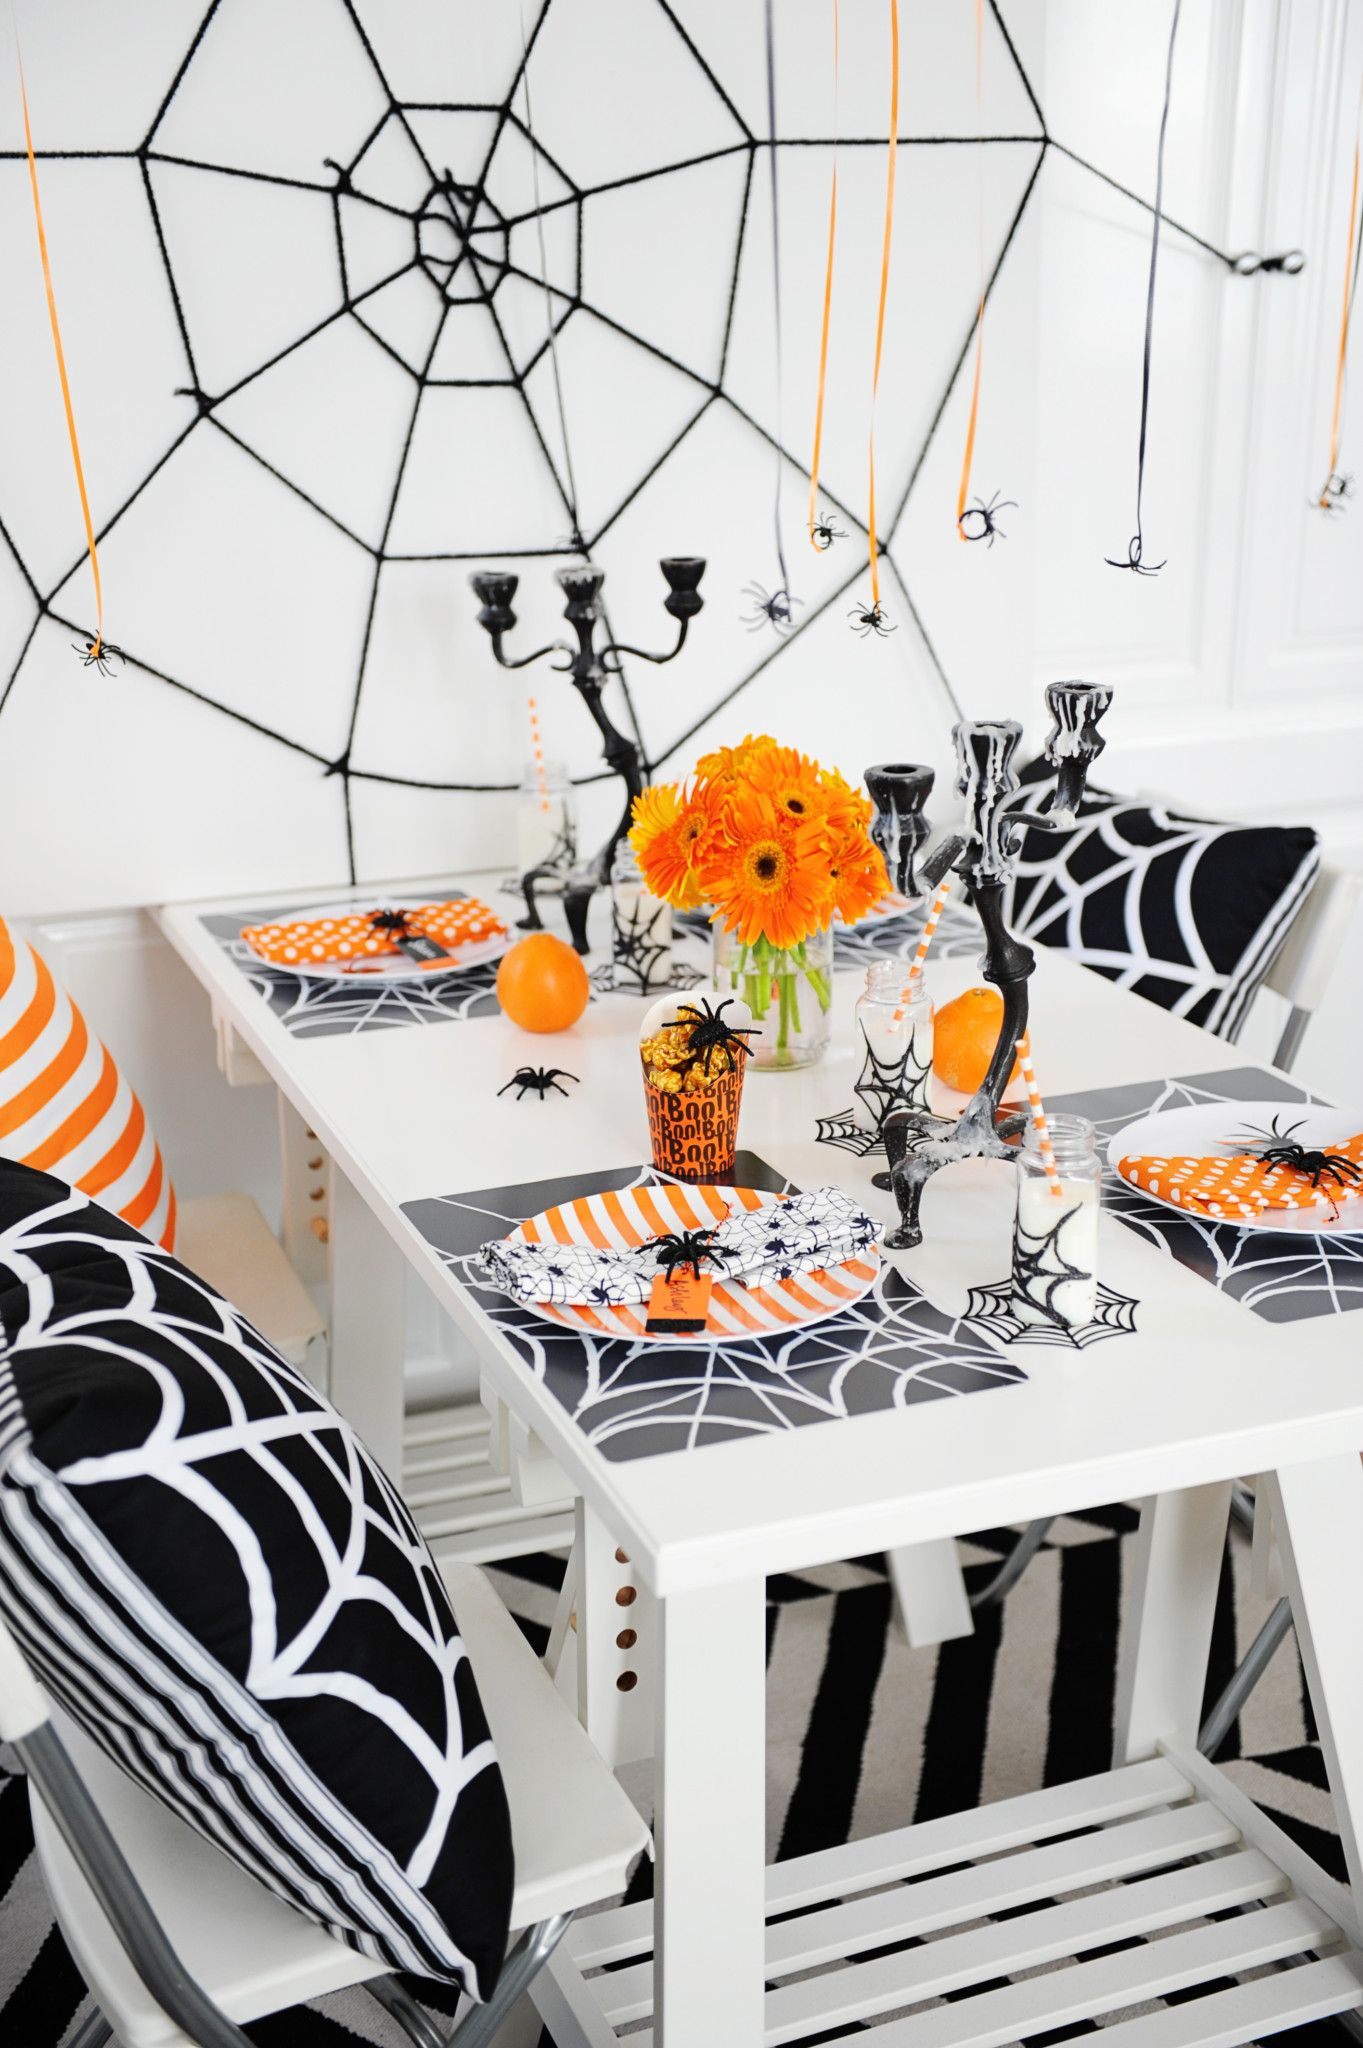 Best Halloween Table Decorations and Centerpiece Ideas - Chic ...